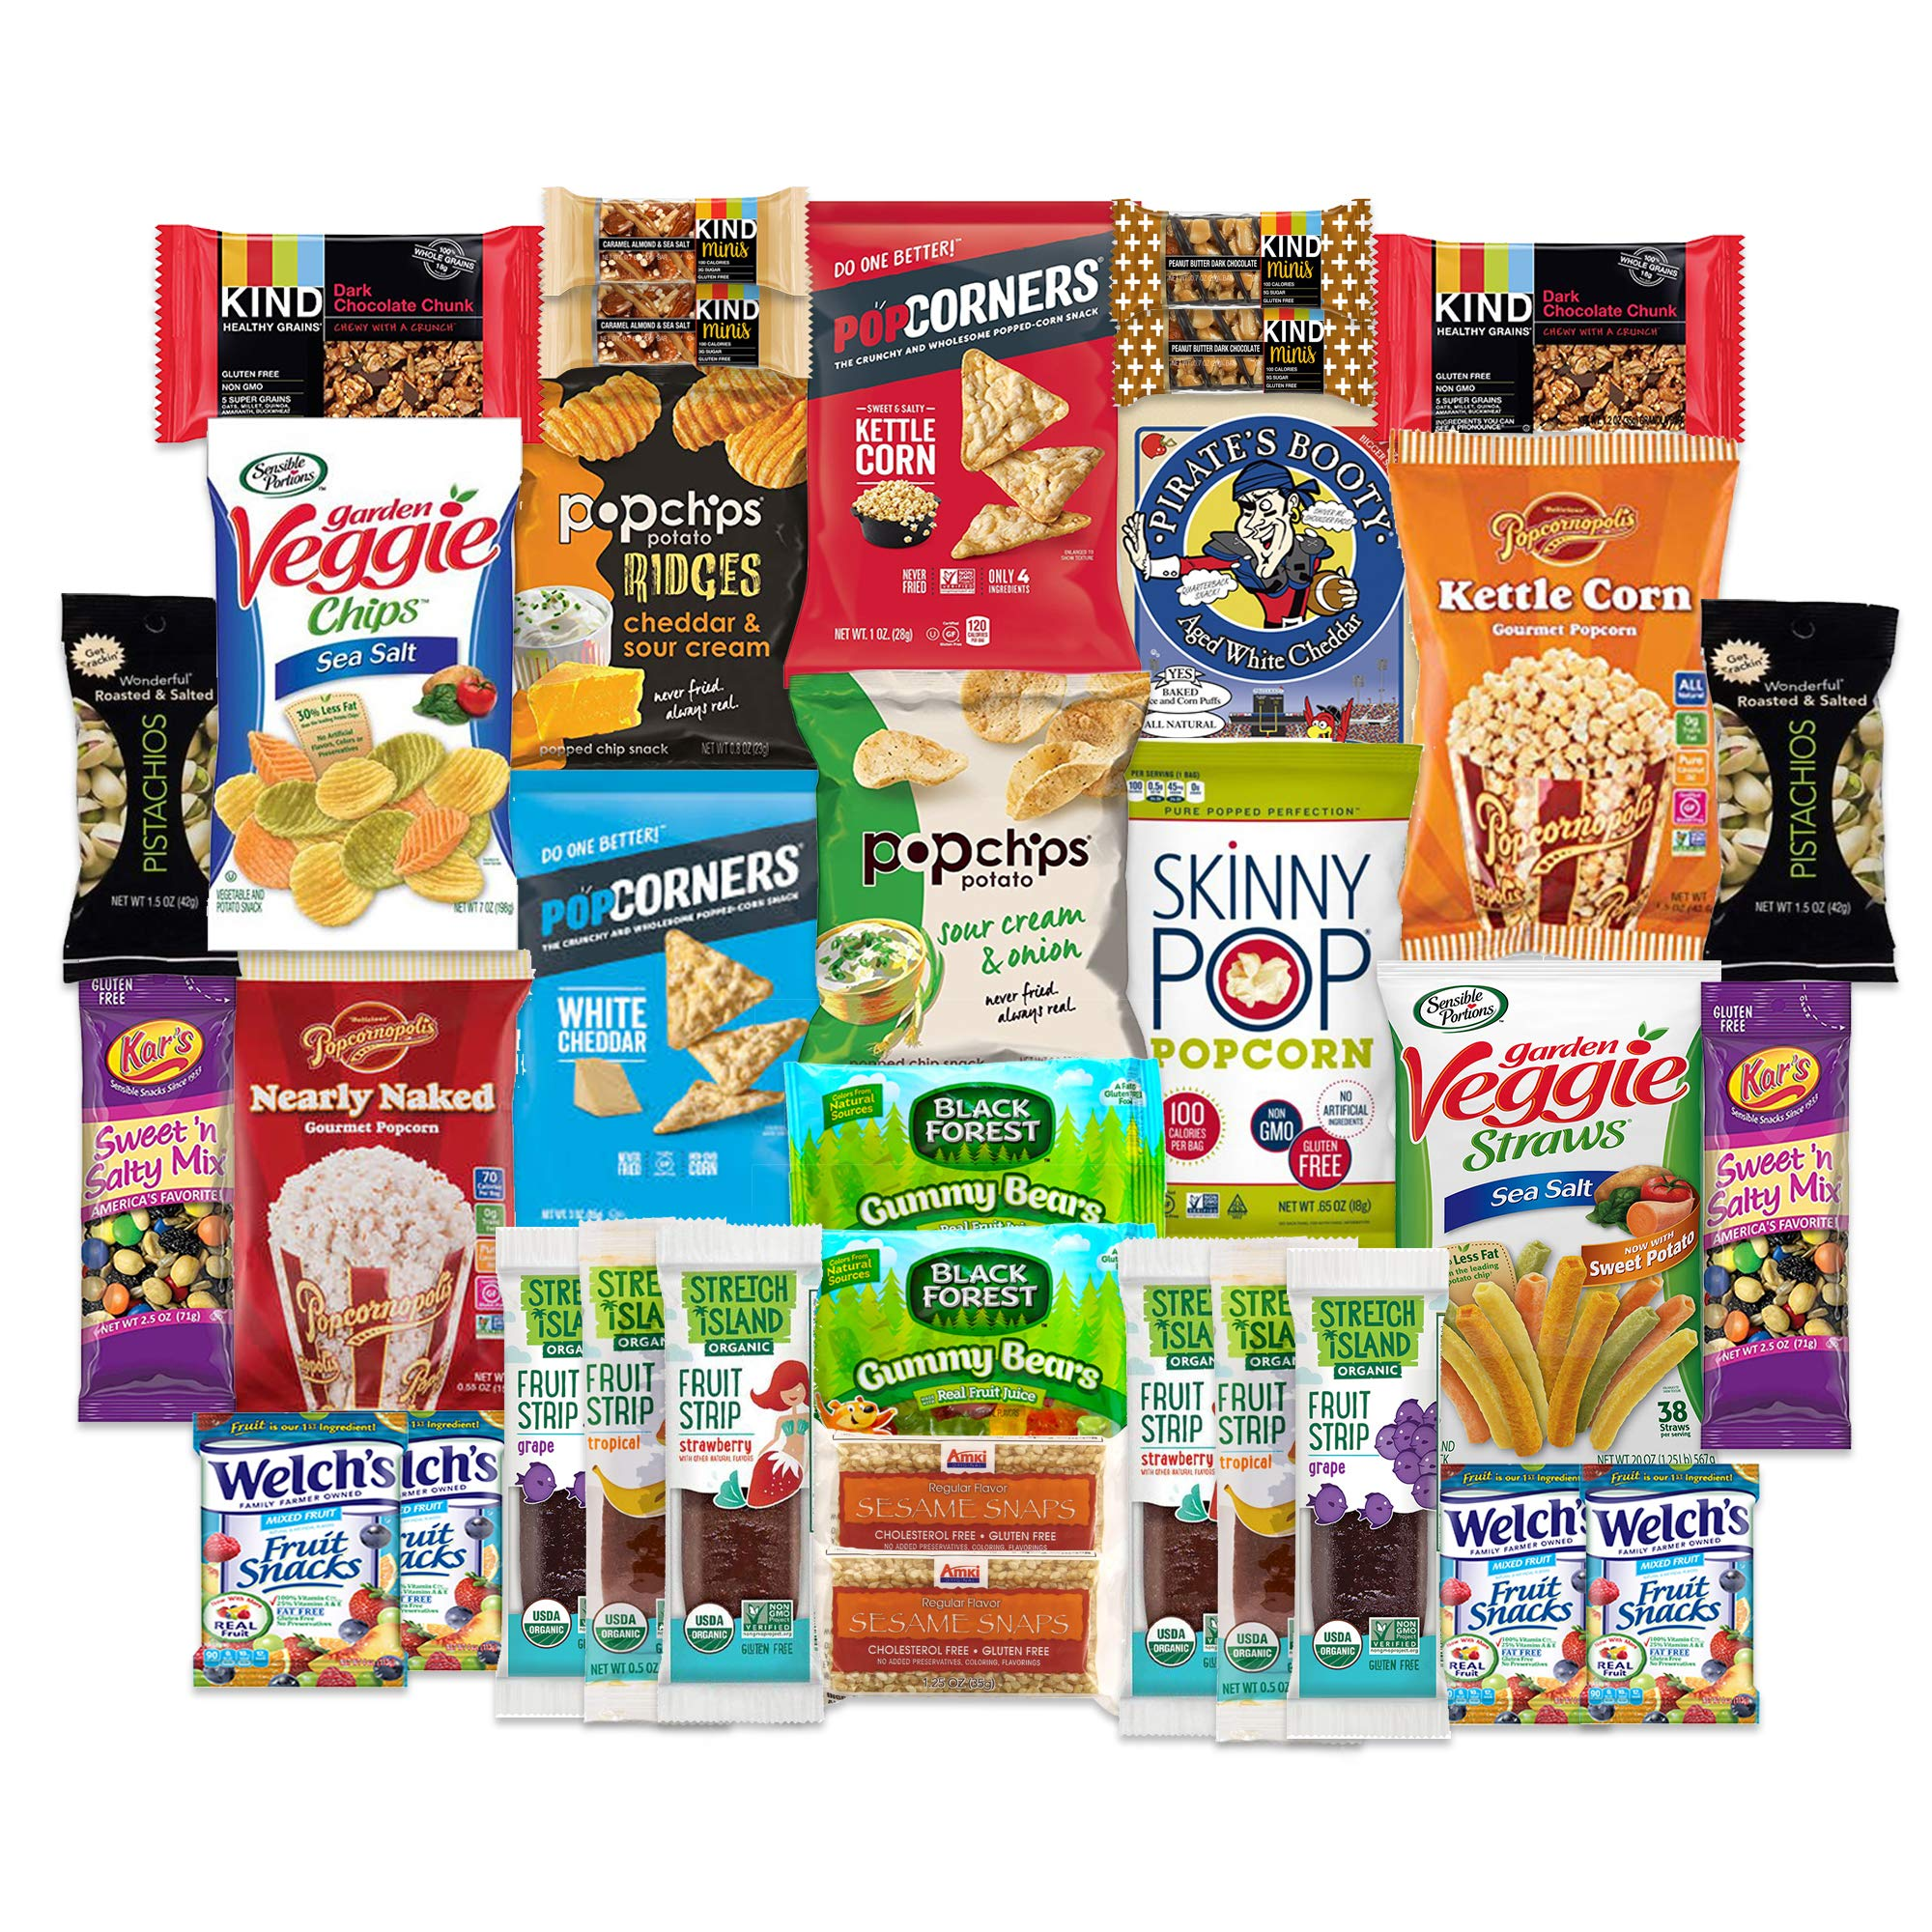 SnackBOX Gluten Free Healthy Snacks Care Package for College Students, Mothers Day, Military, Finals, Office and Gift Ideas. Over 3 LBS of Chips, Popcorn, and granola Bars. (34 Count)